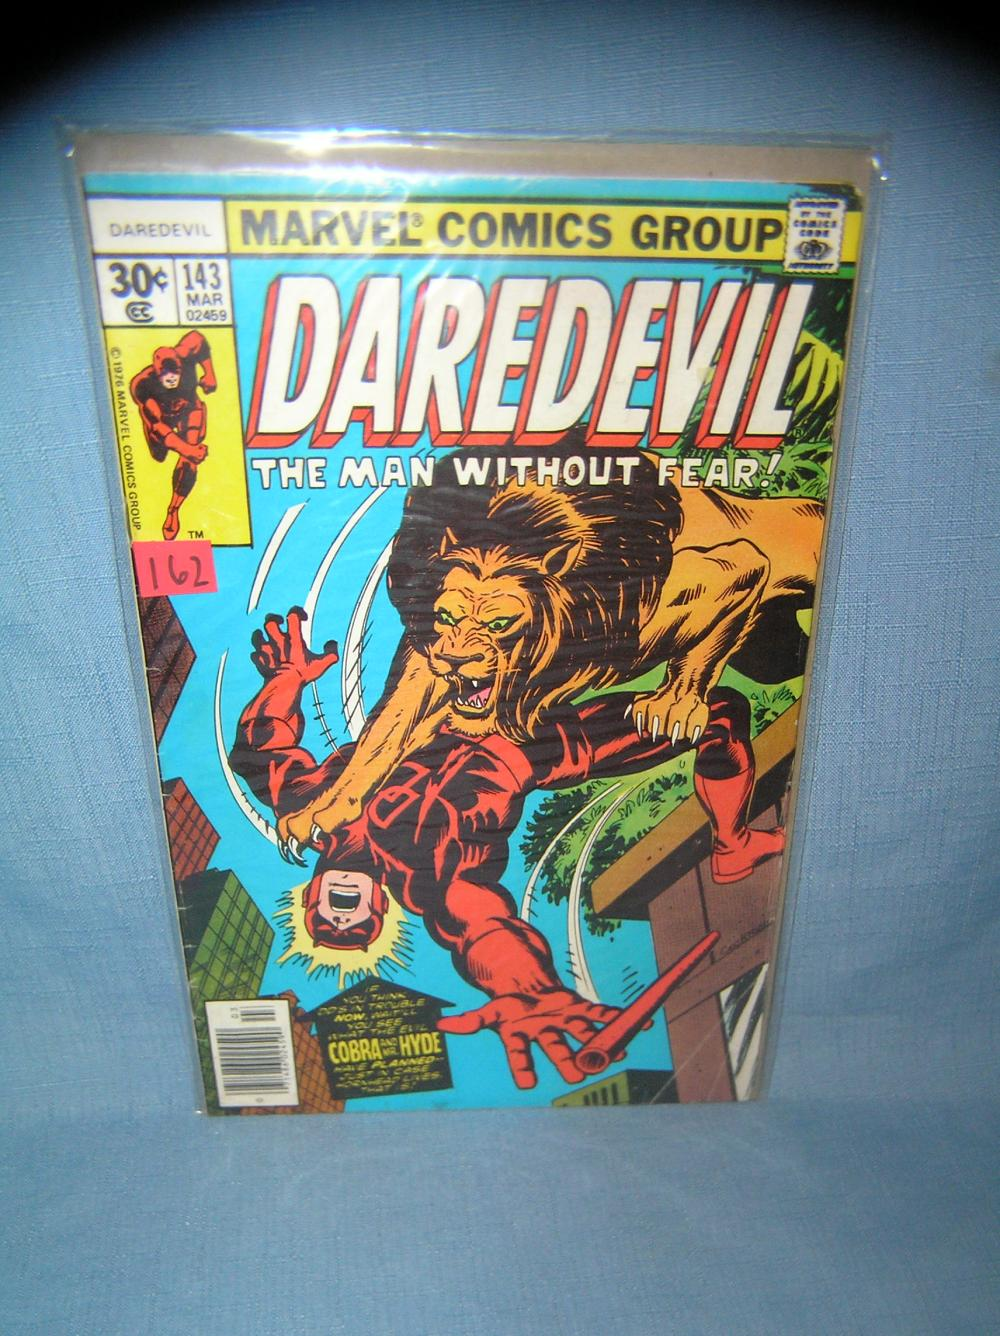 EARLY MARVEL DAREDEVIL COMIC BOOK